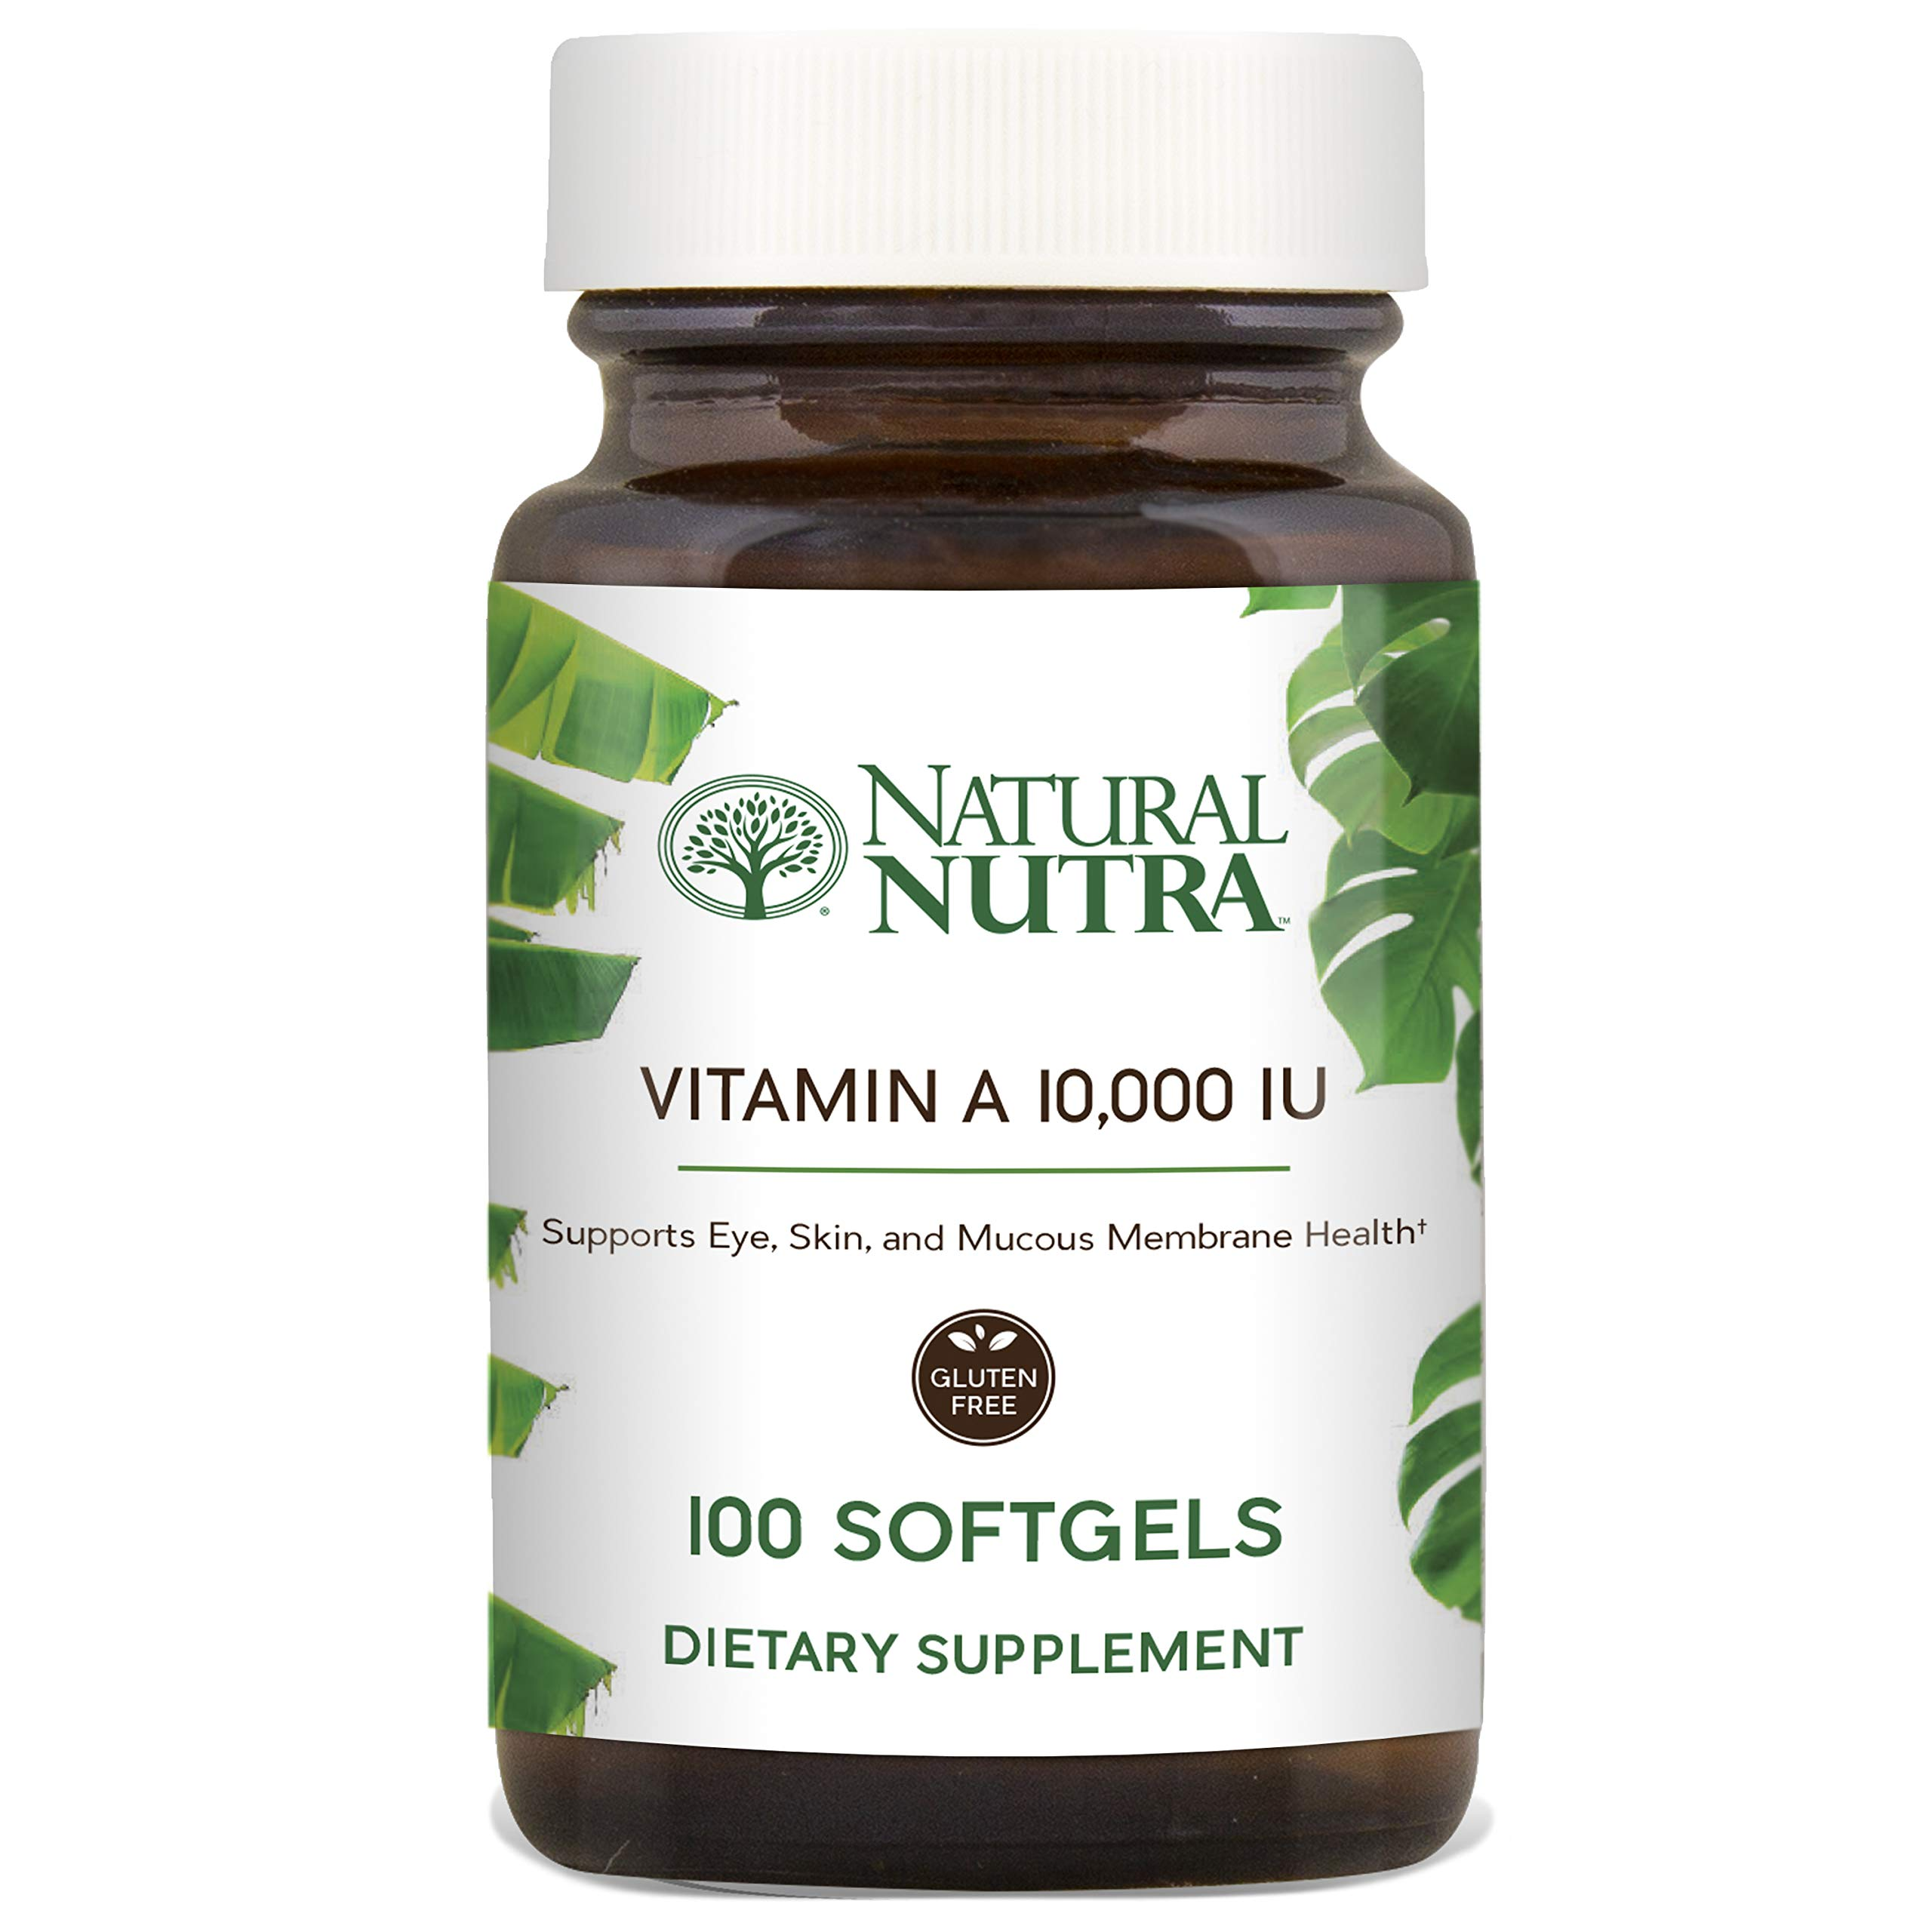 Natural Nutra Vitamin A Dietary Supplement from Cod Liver Oil, 10,000 IU, 100 Softgels by Natural Nutra